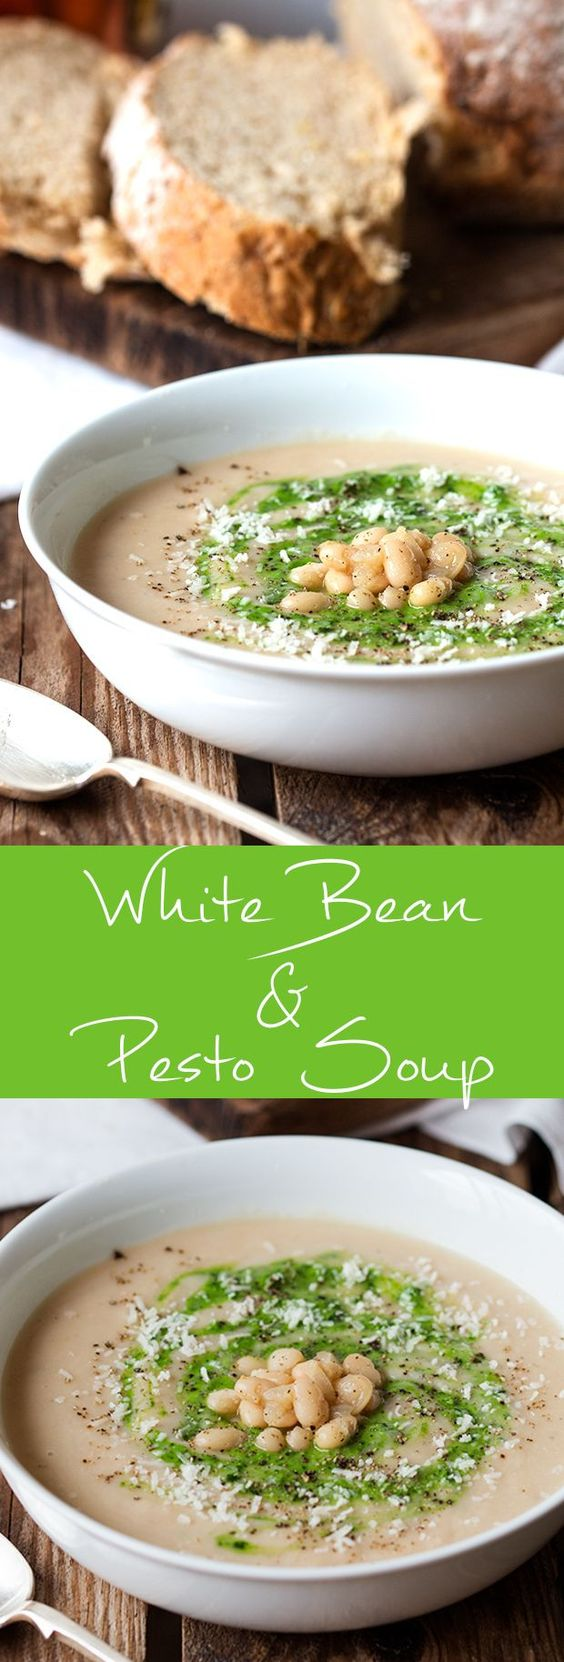 sopitas soups and more white bean soup white beans pesto beans soups ...